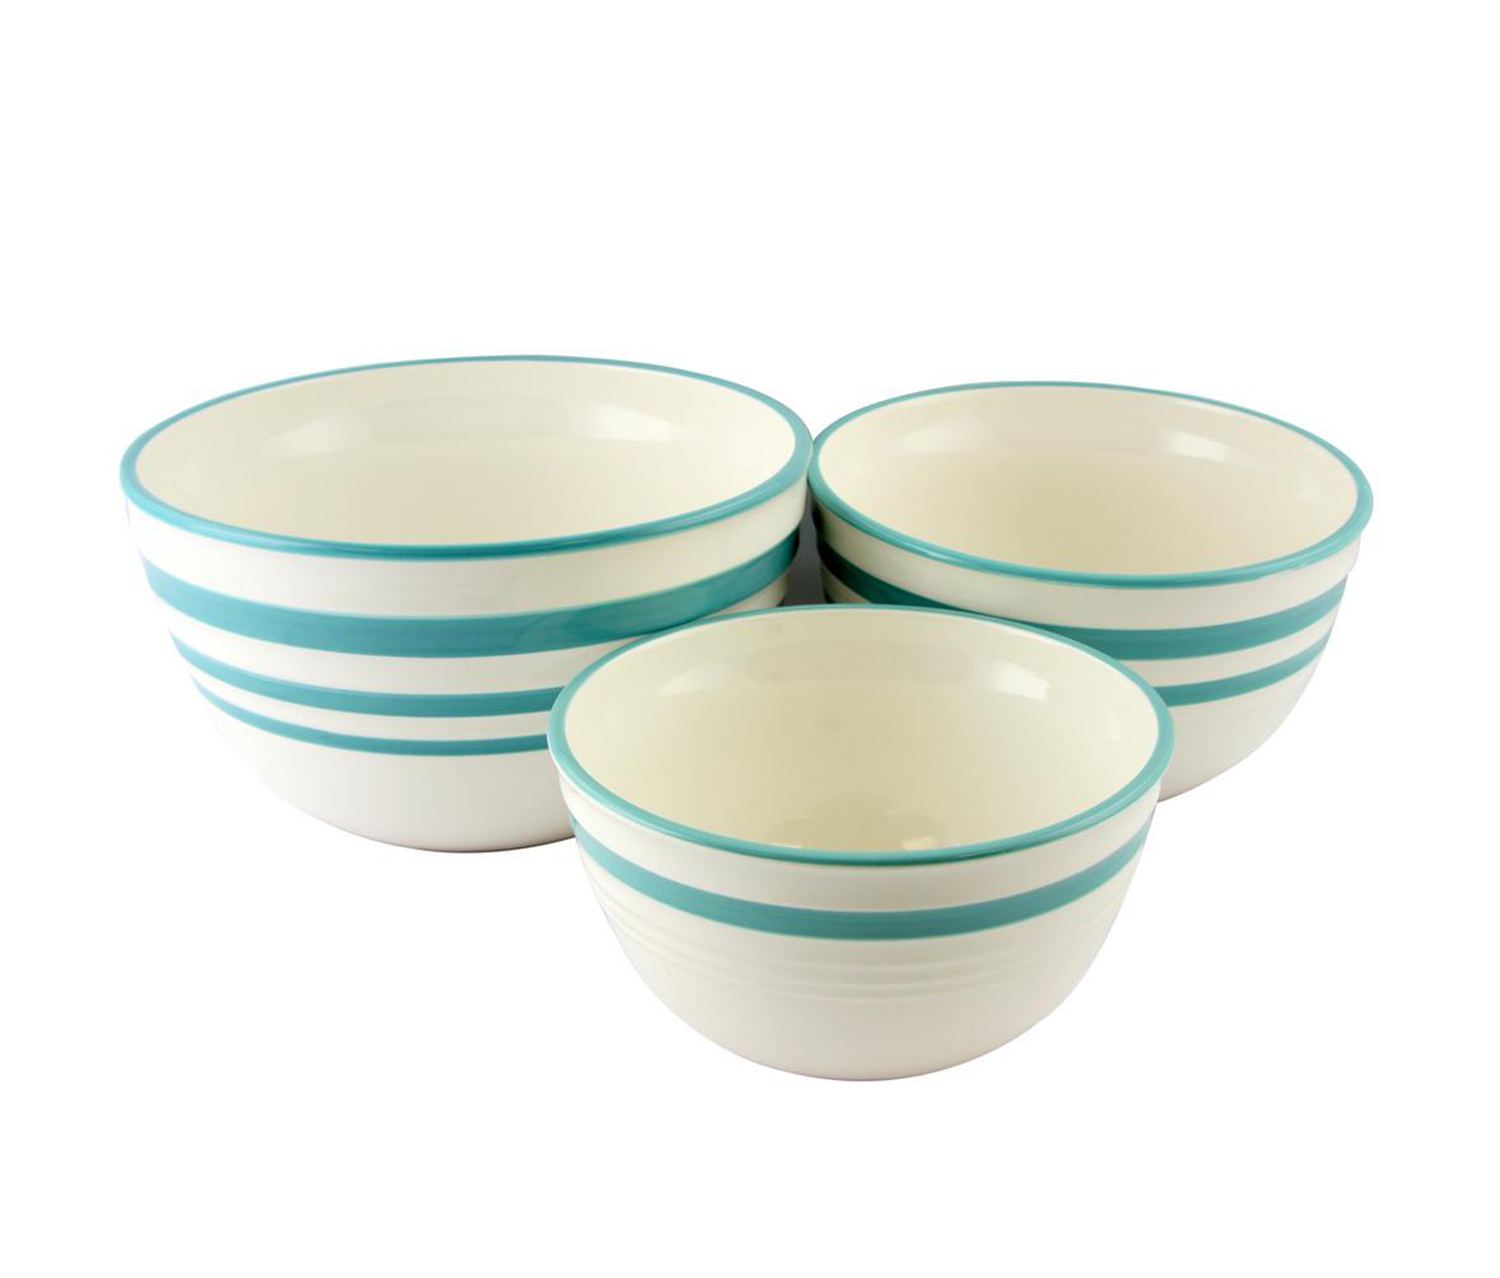 Gibson 3-pc. Nesting Bowl Set, White/Teal Blue